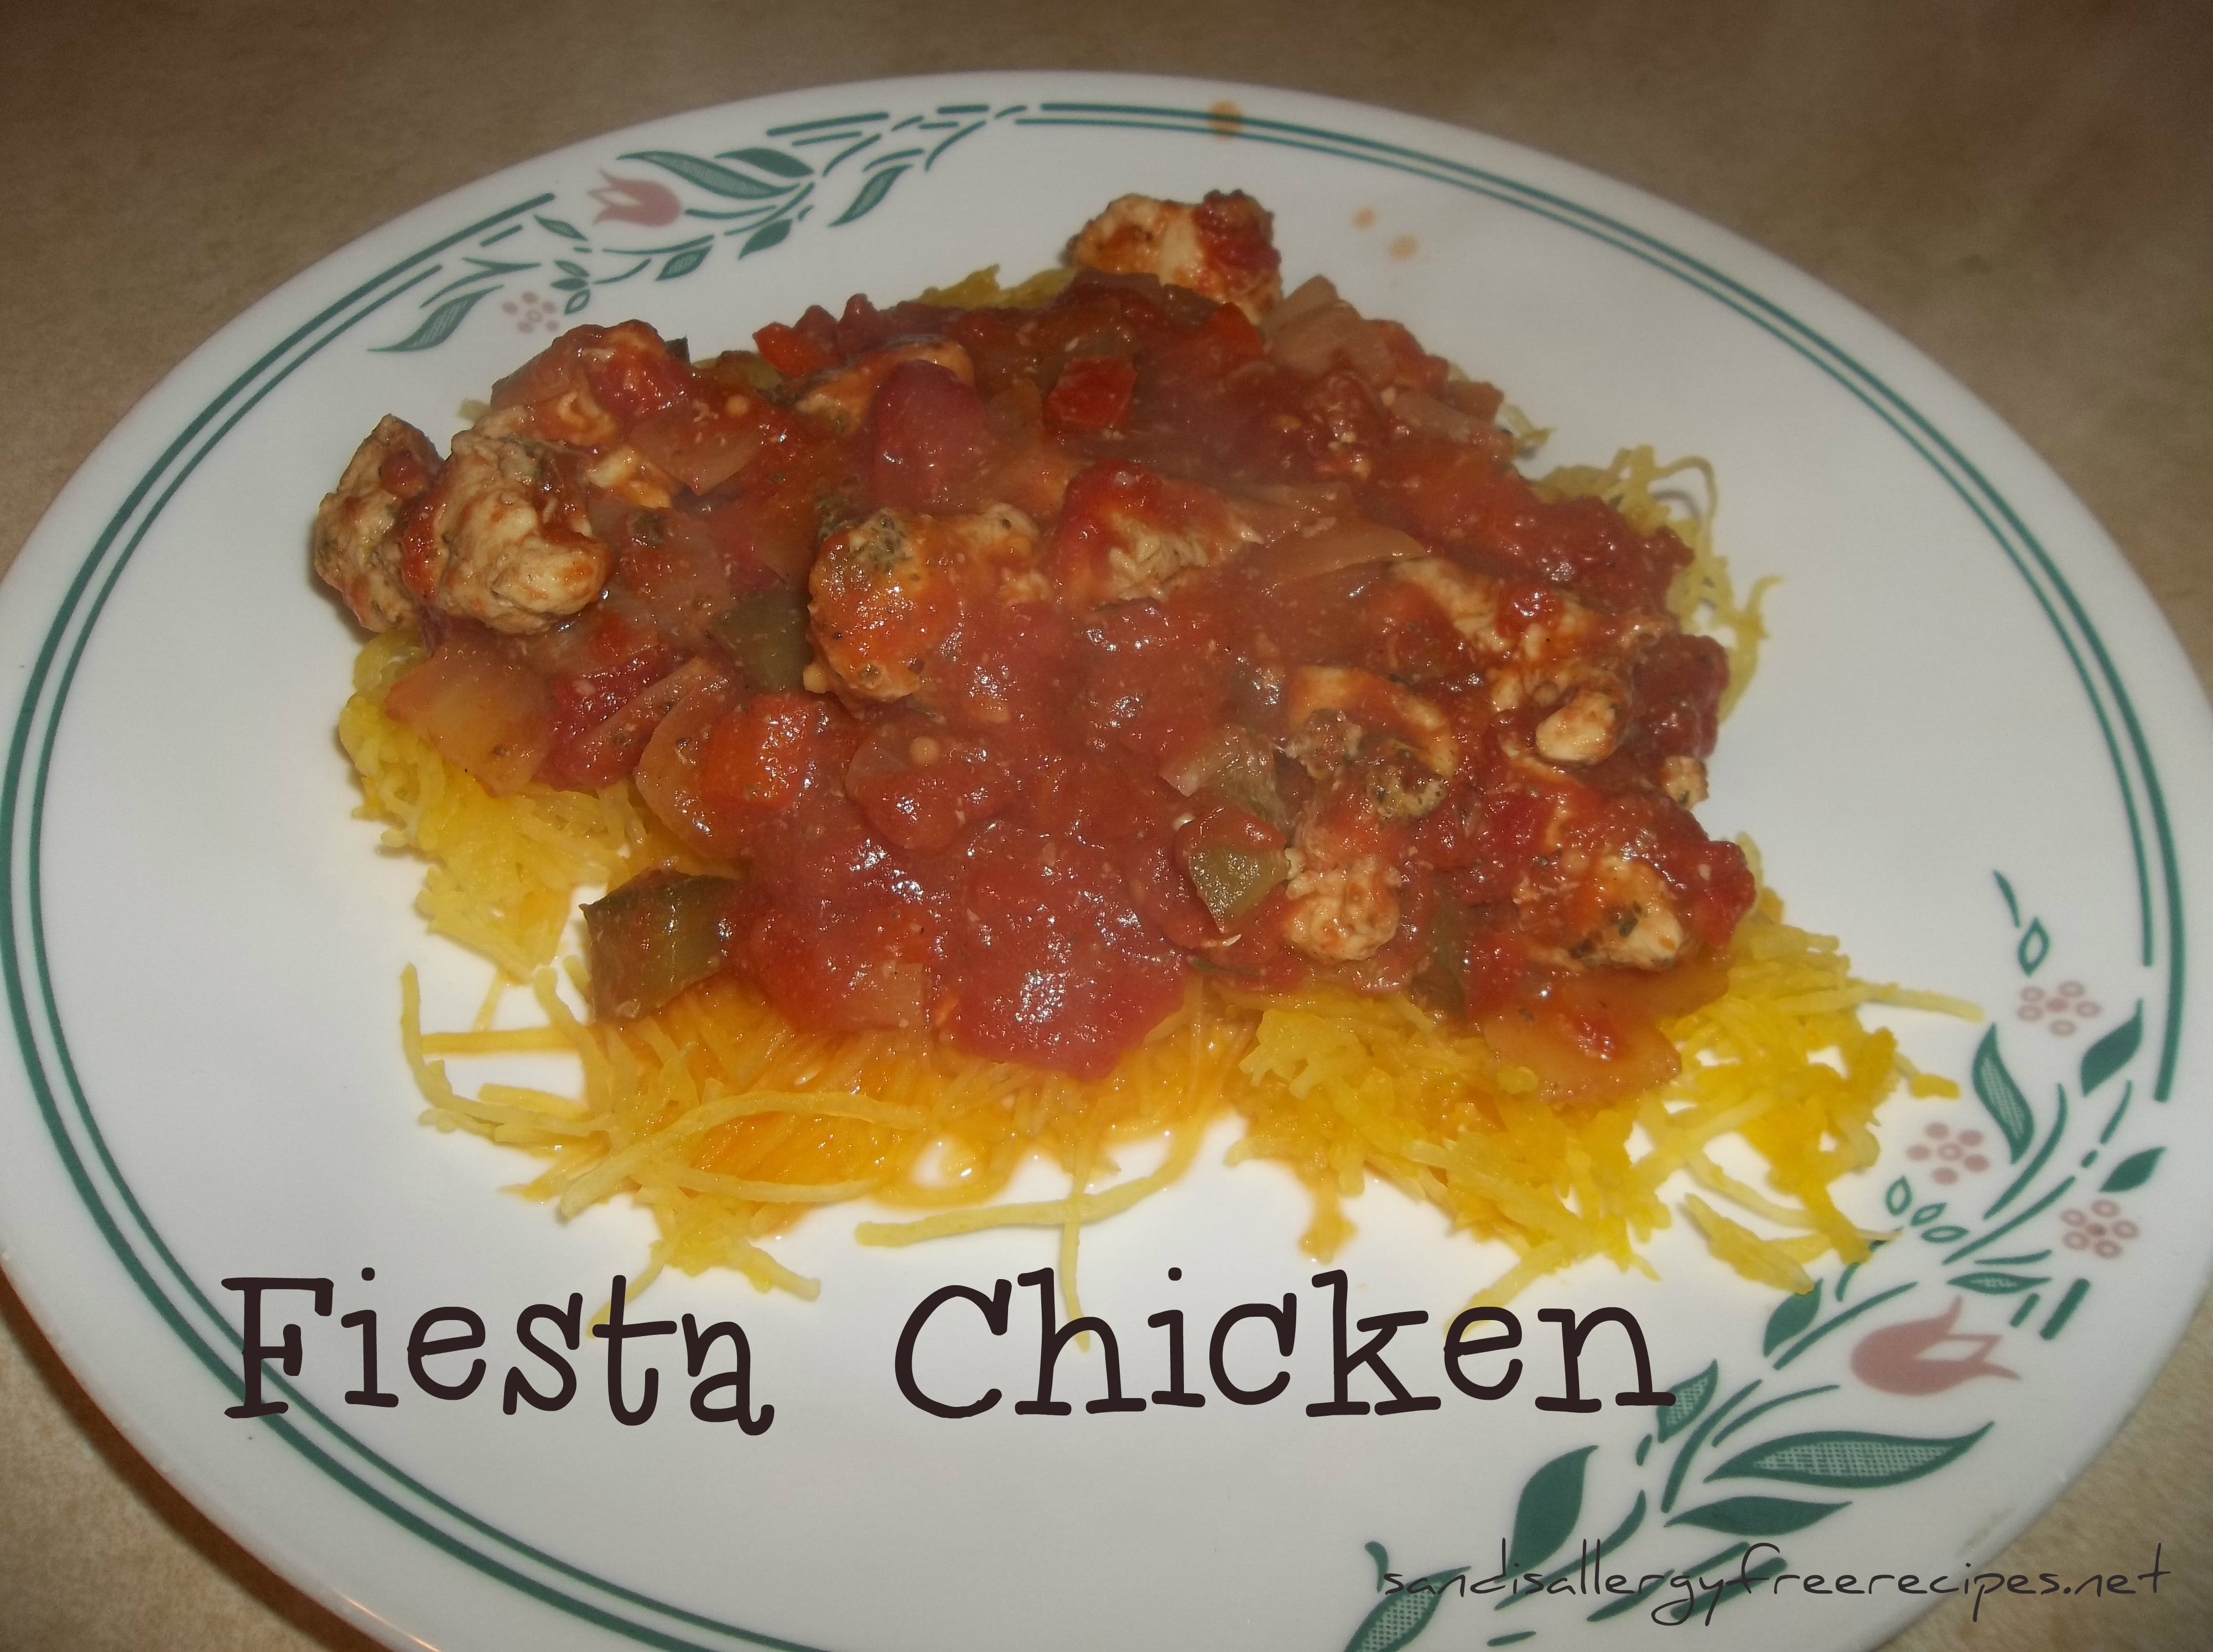 Fiesta Chicken